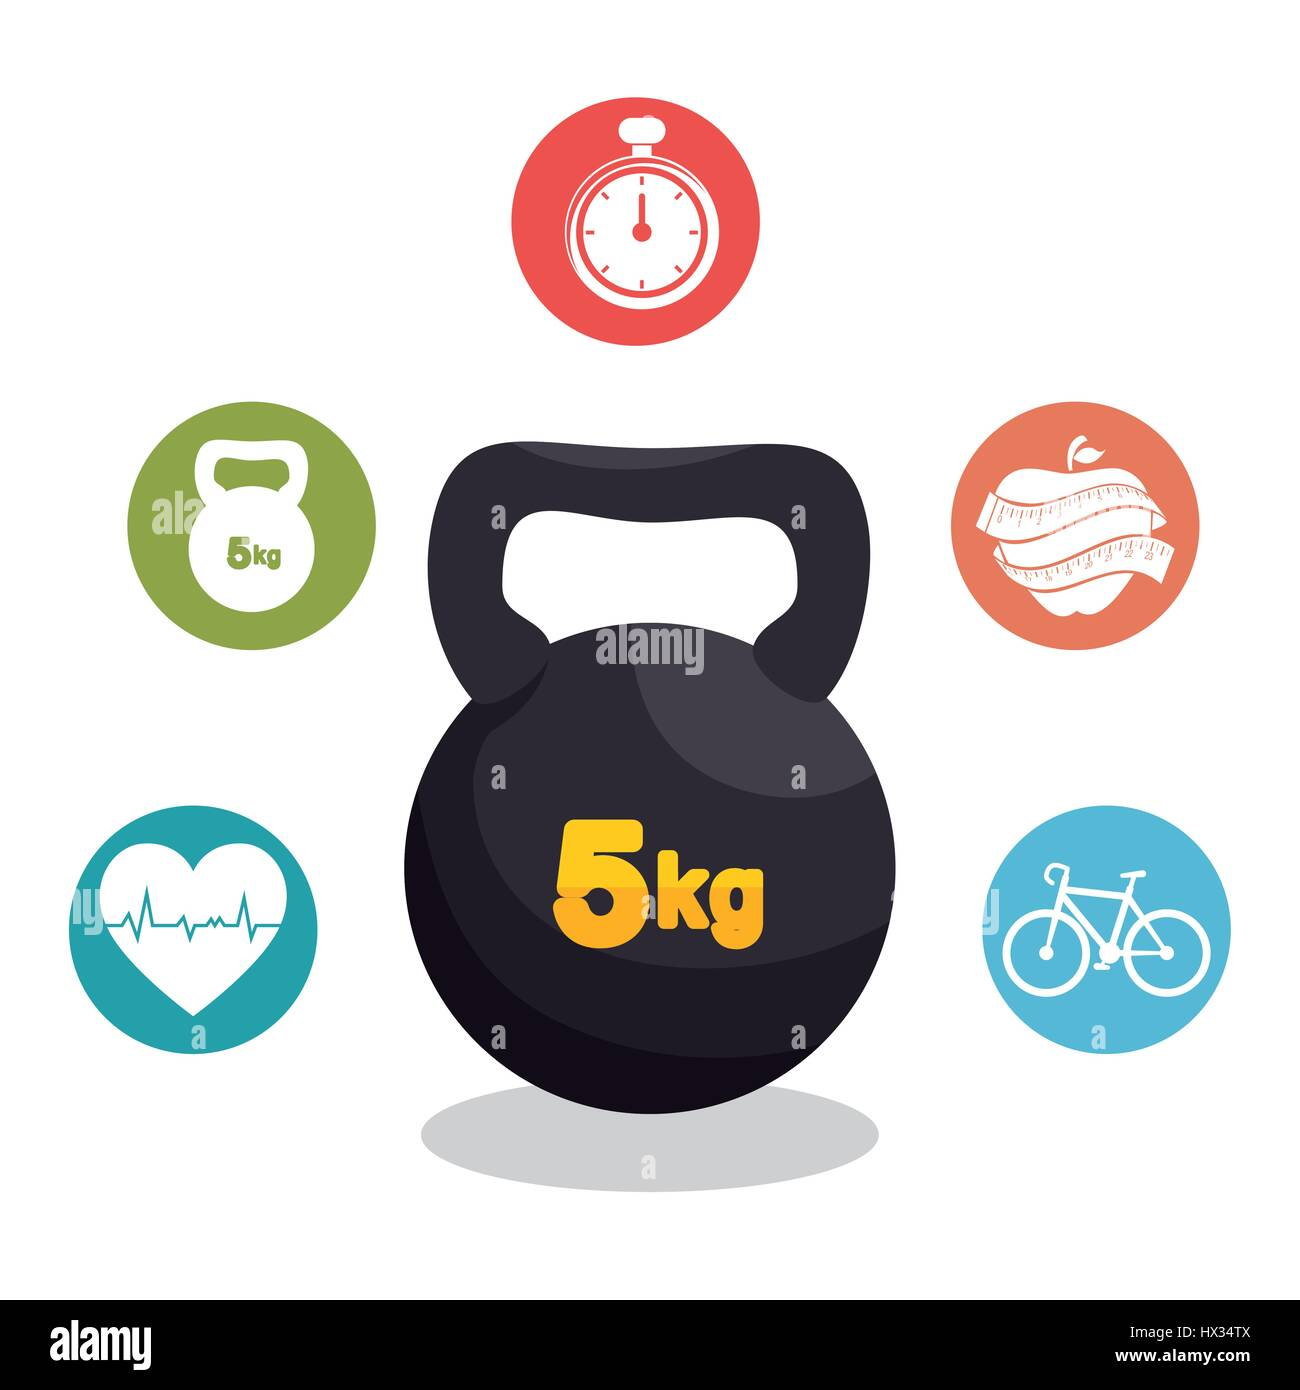 fitness lifestyle elements icons - Stock Vector